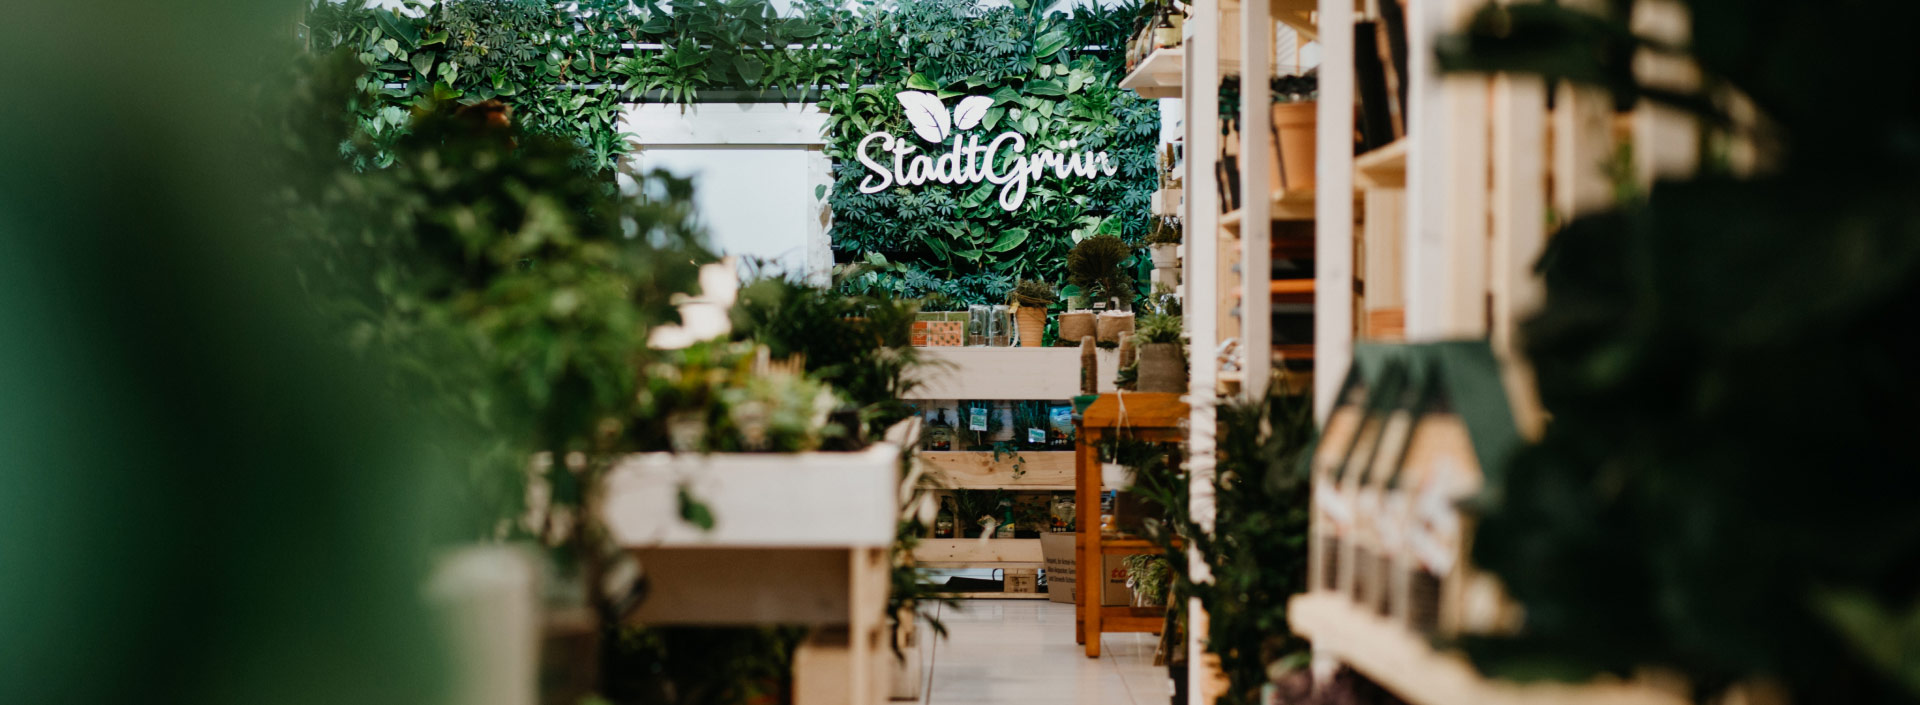 Thats's Retail! - Customer Stadtgrün by toom - Urban-Gardening-Store